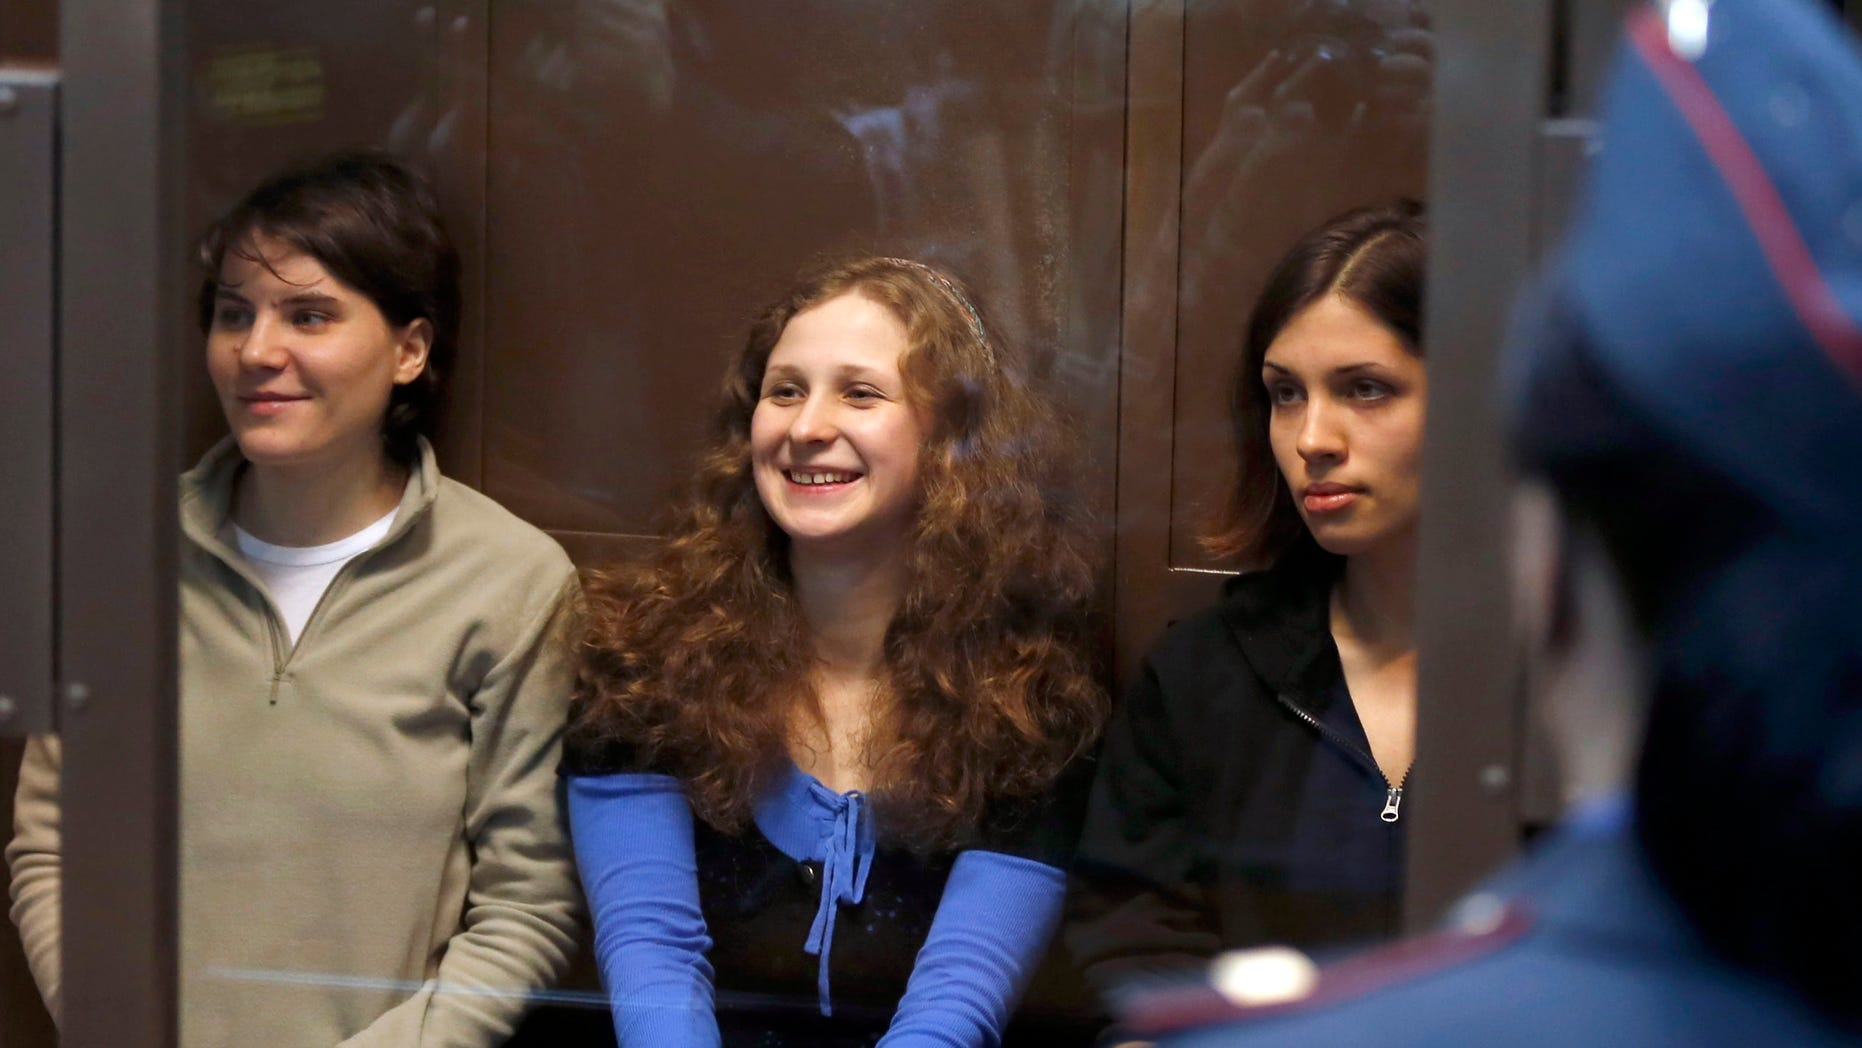 Oct. 10, 2012: Feminist punk group Pussy Riot members, from left, Maria Alekhina, Yekaterina Samutsevich and Nadezhda Tolokonnikova sit in a glass cage at a court room in Moscow.